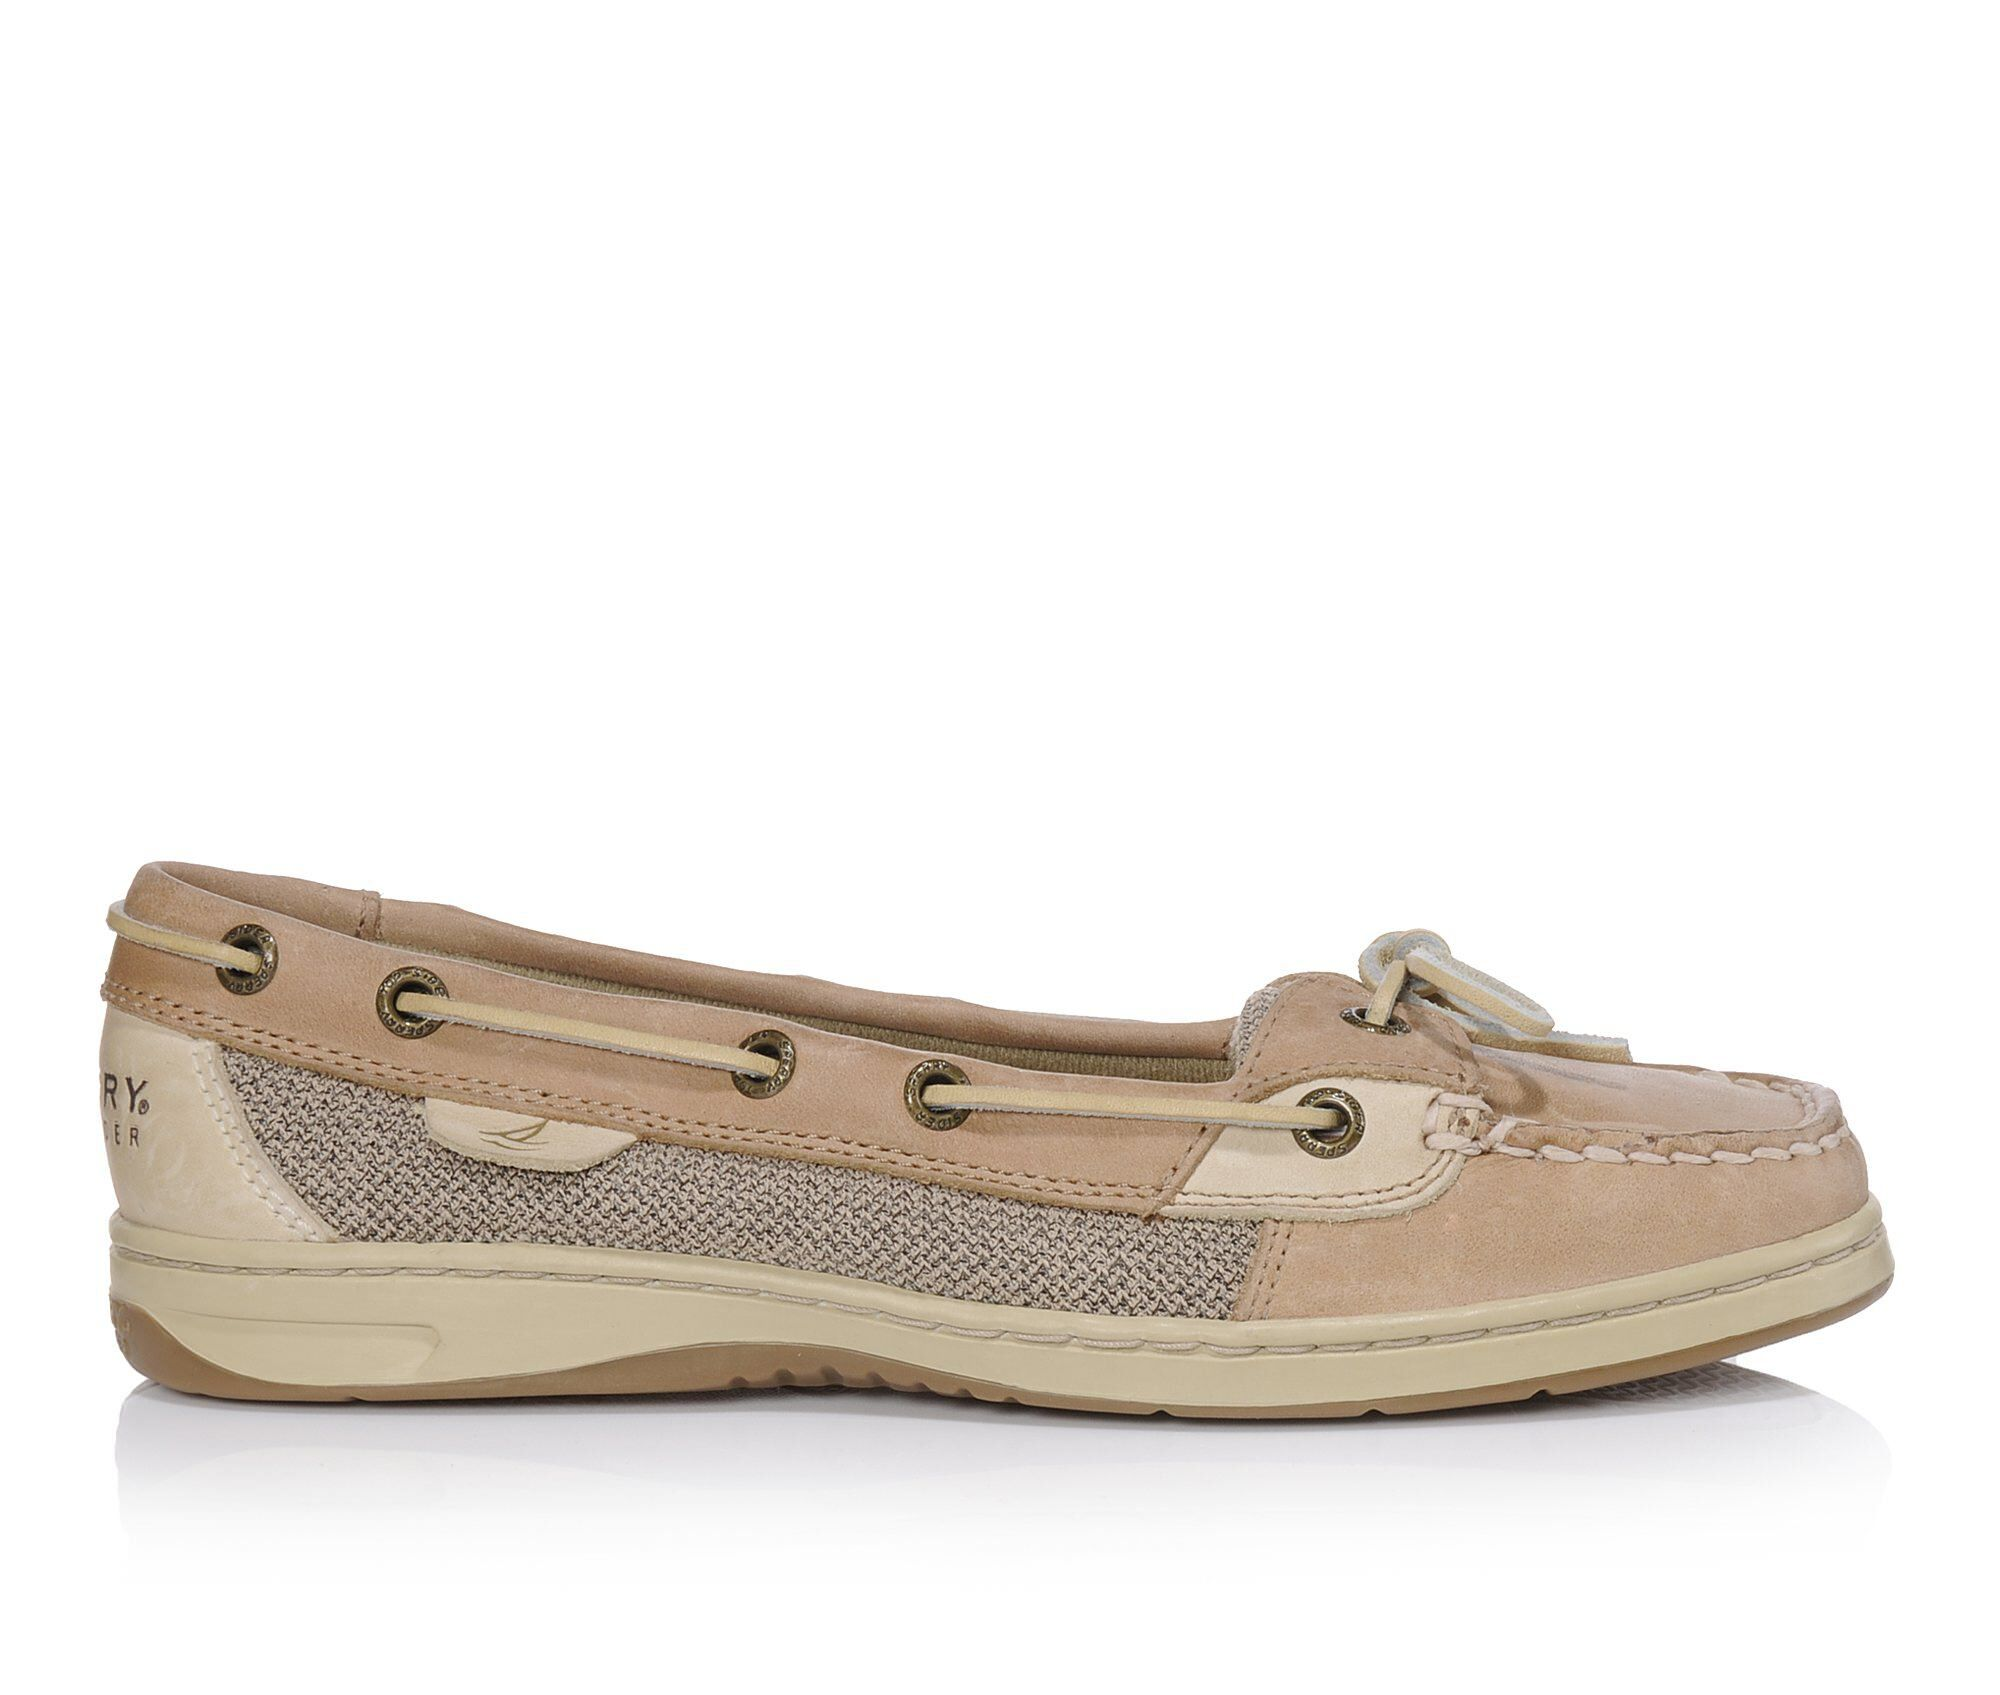 find cheapest Women's Sperry Angelfish Boat Shoes Linen/Oat